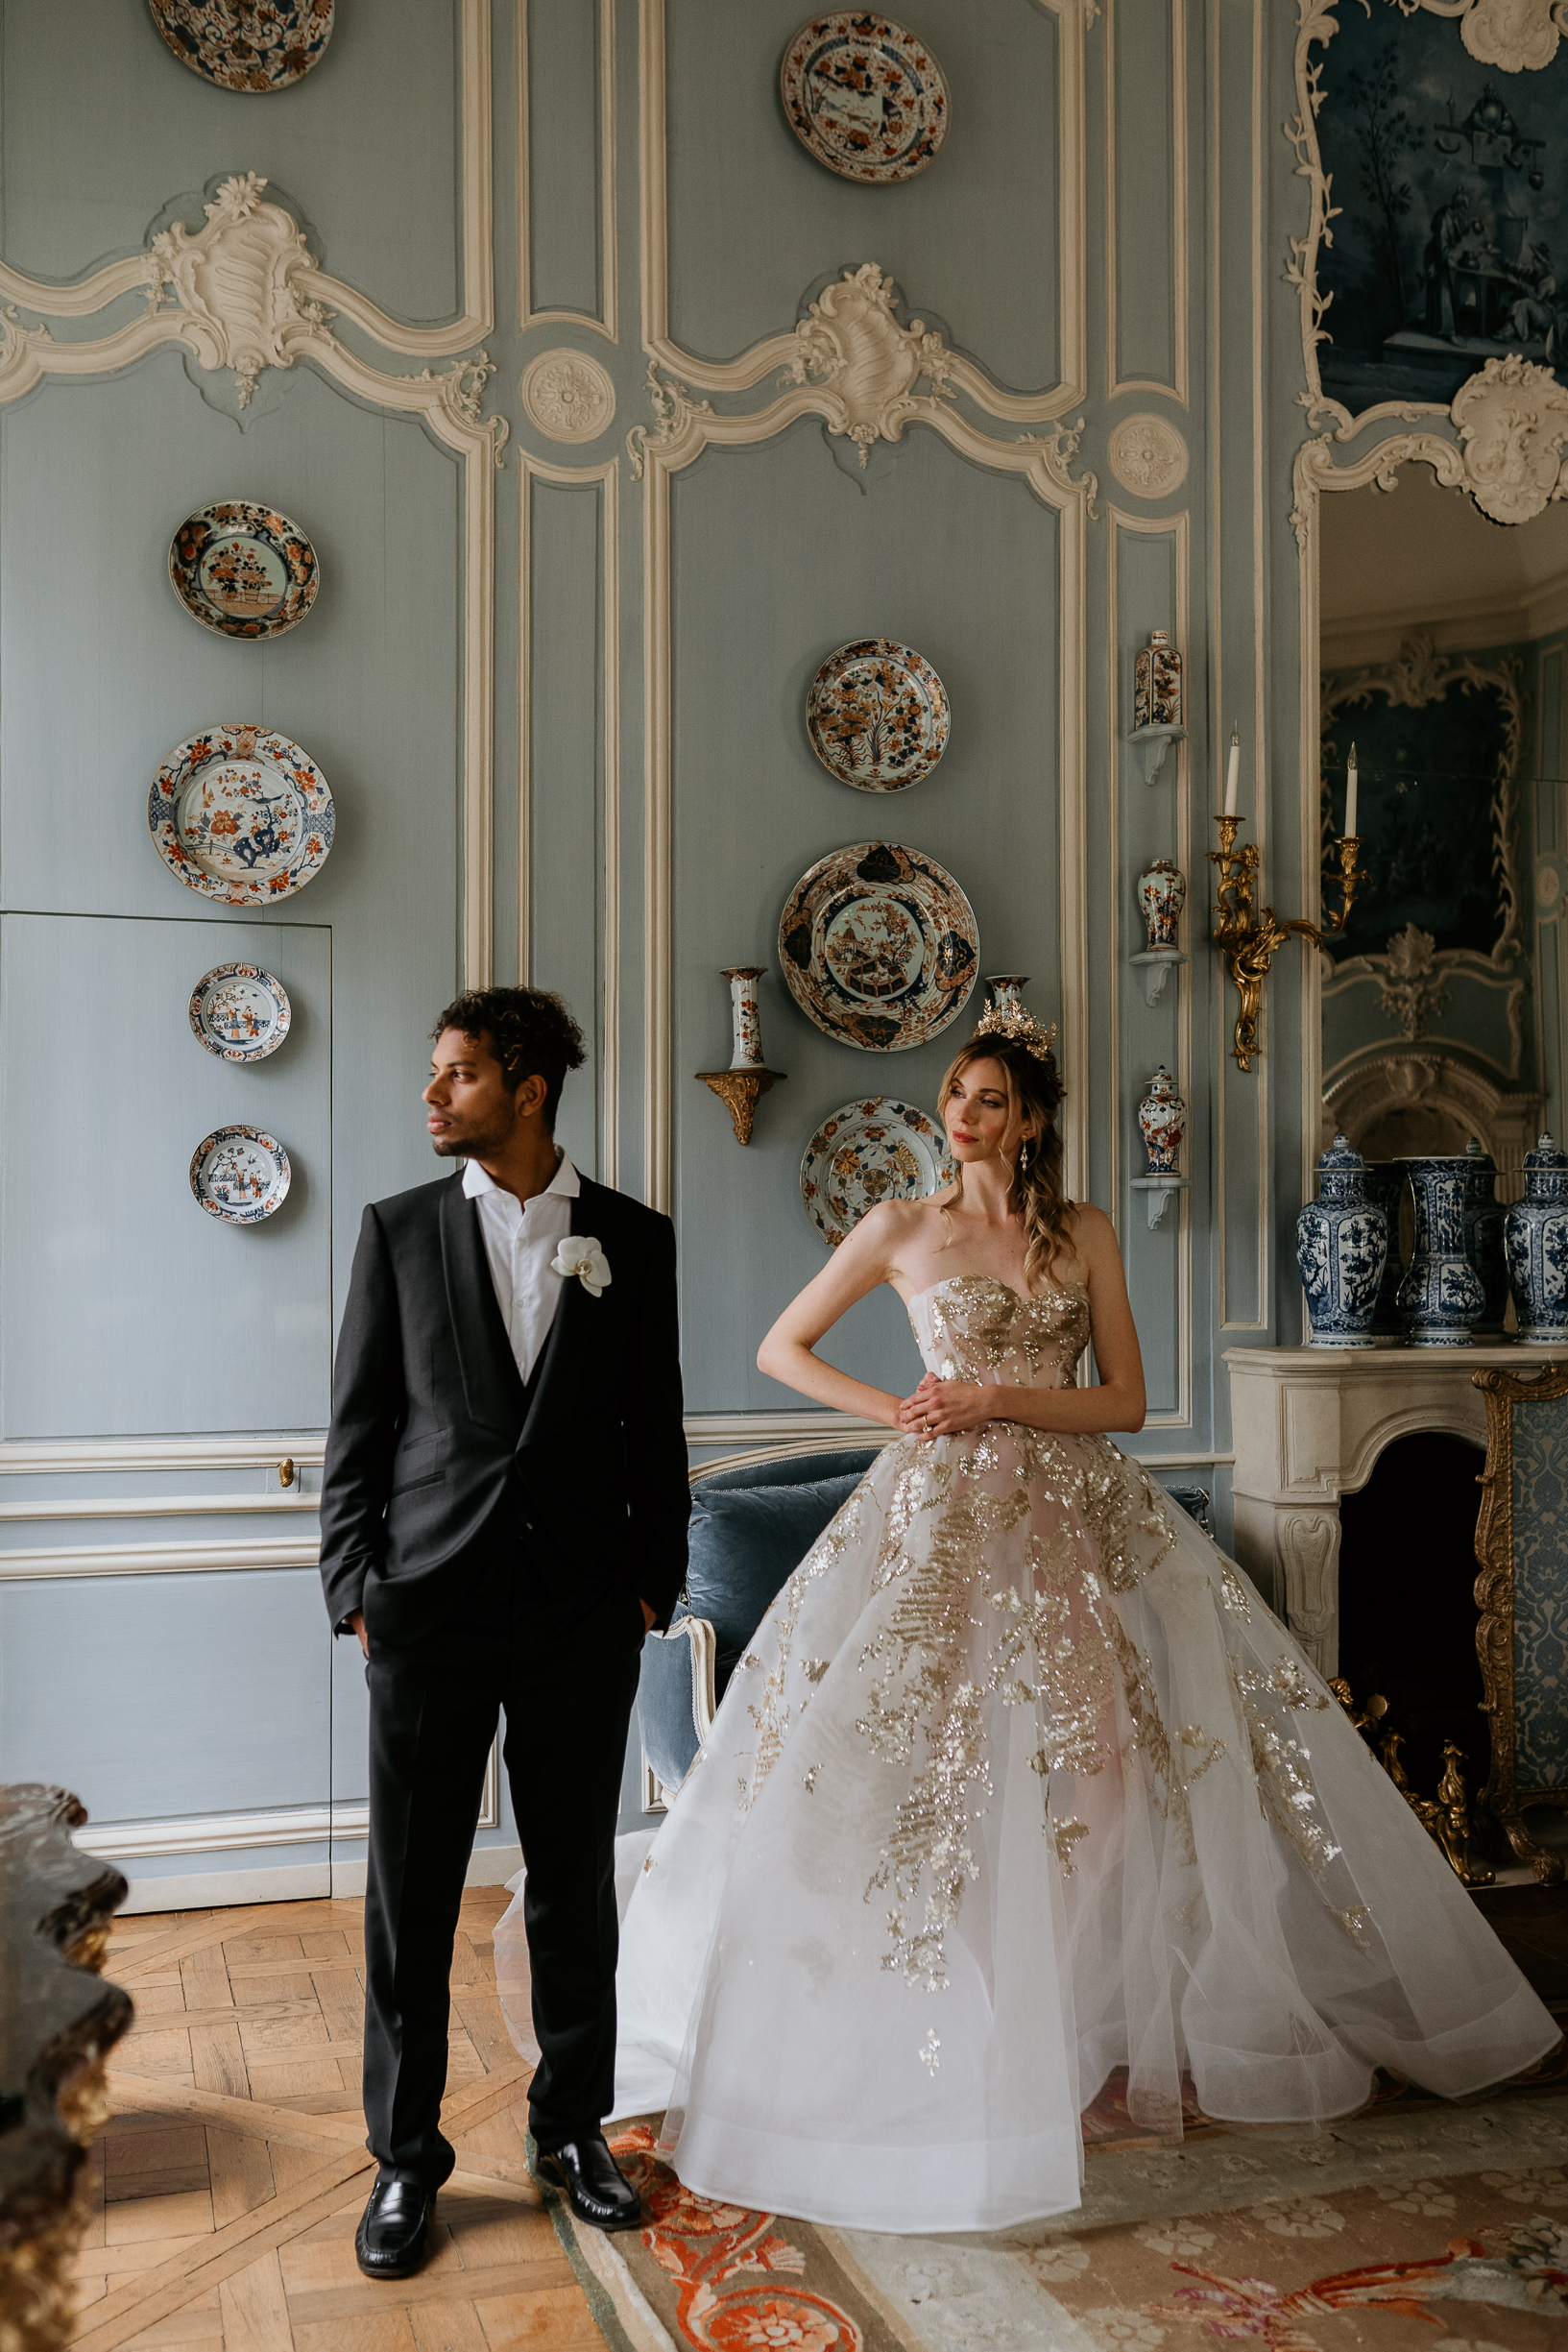 Chateau de Villette interior luxury wedding